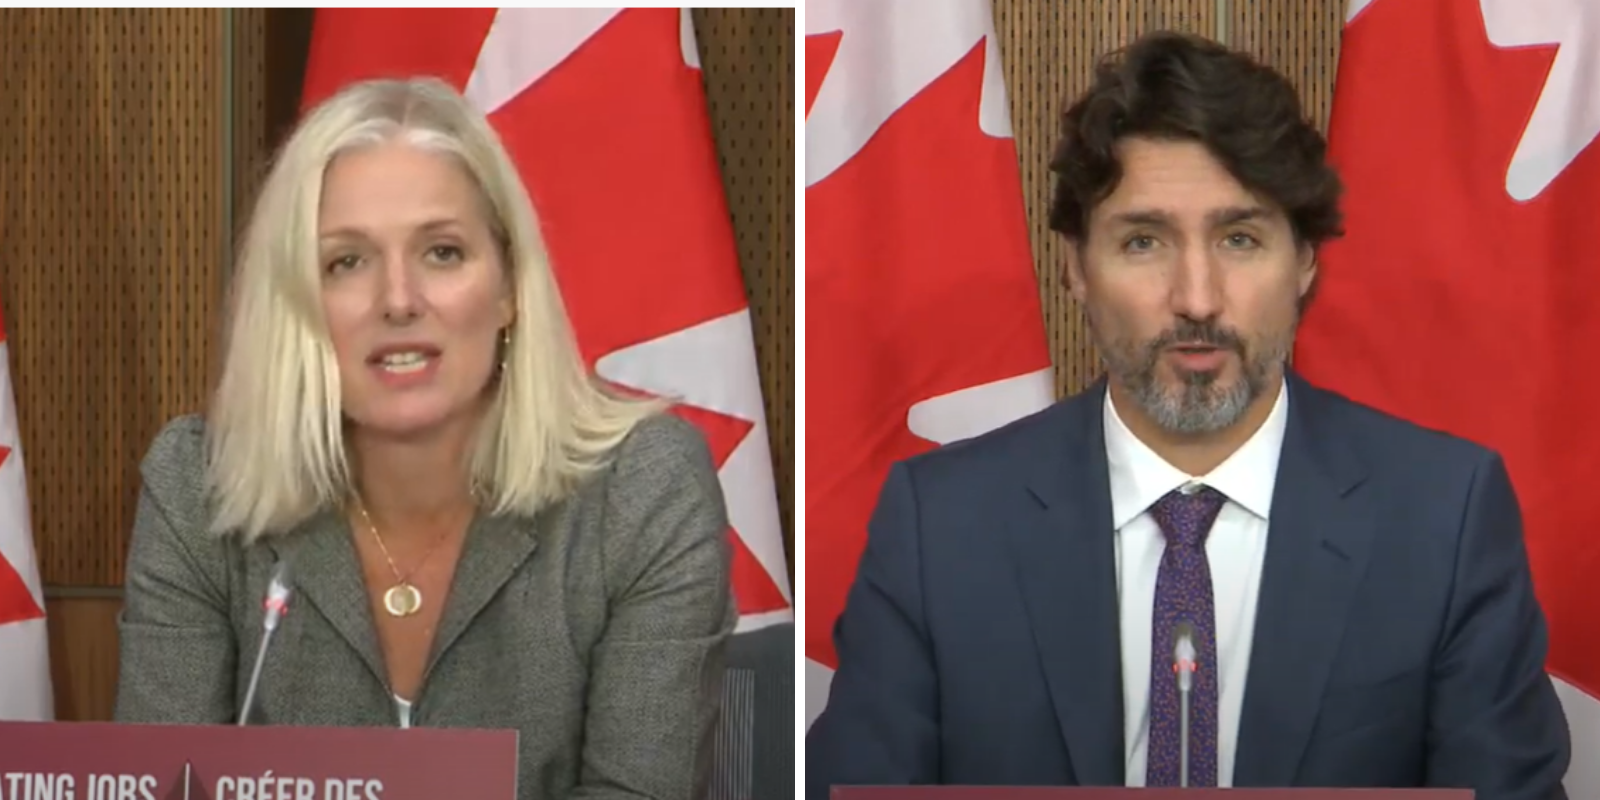 BREAKING: Trudeau announces $10 BILLION investment into infrastructure to create 60,000 jobs